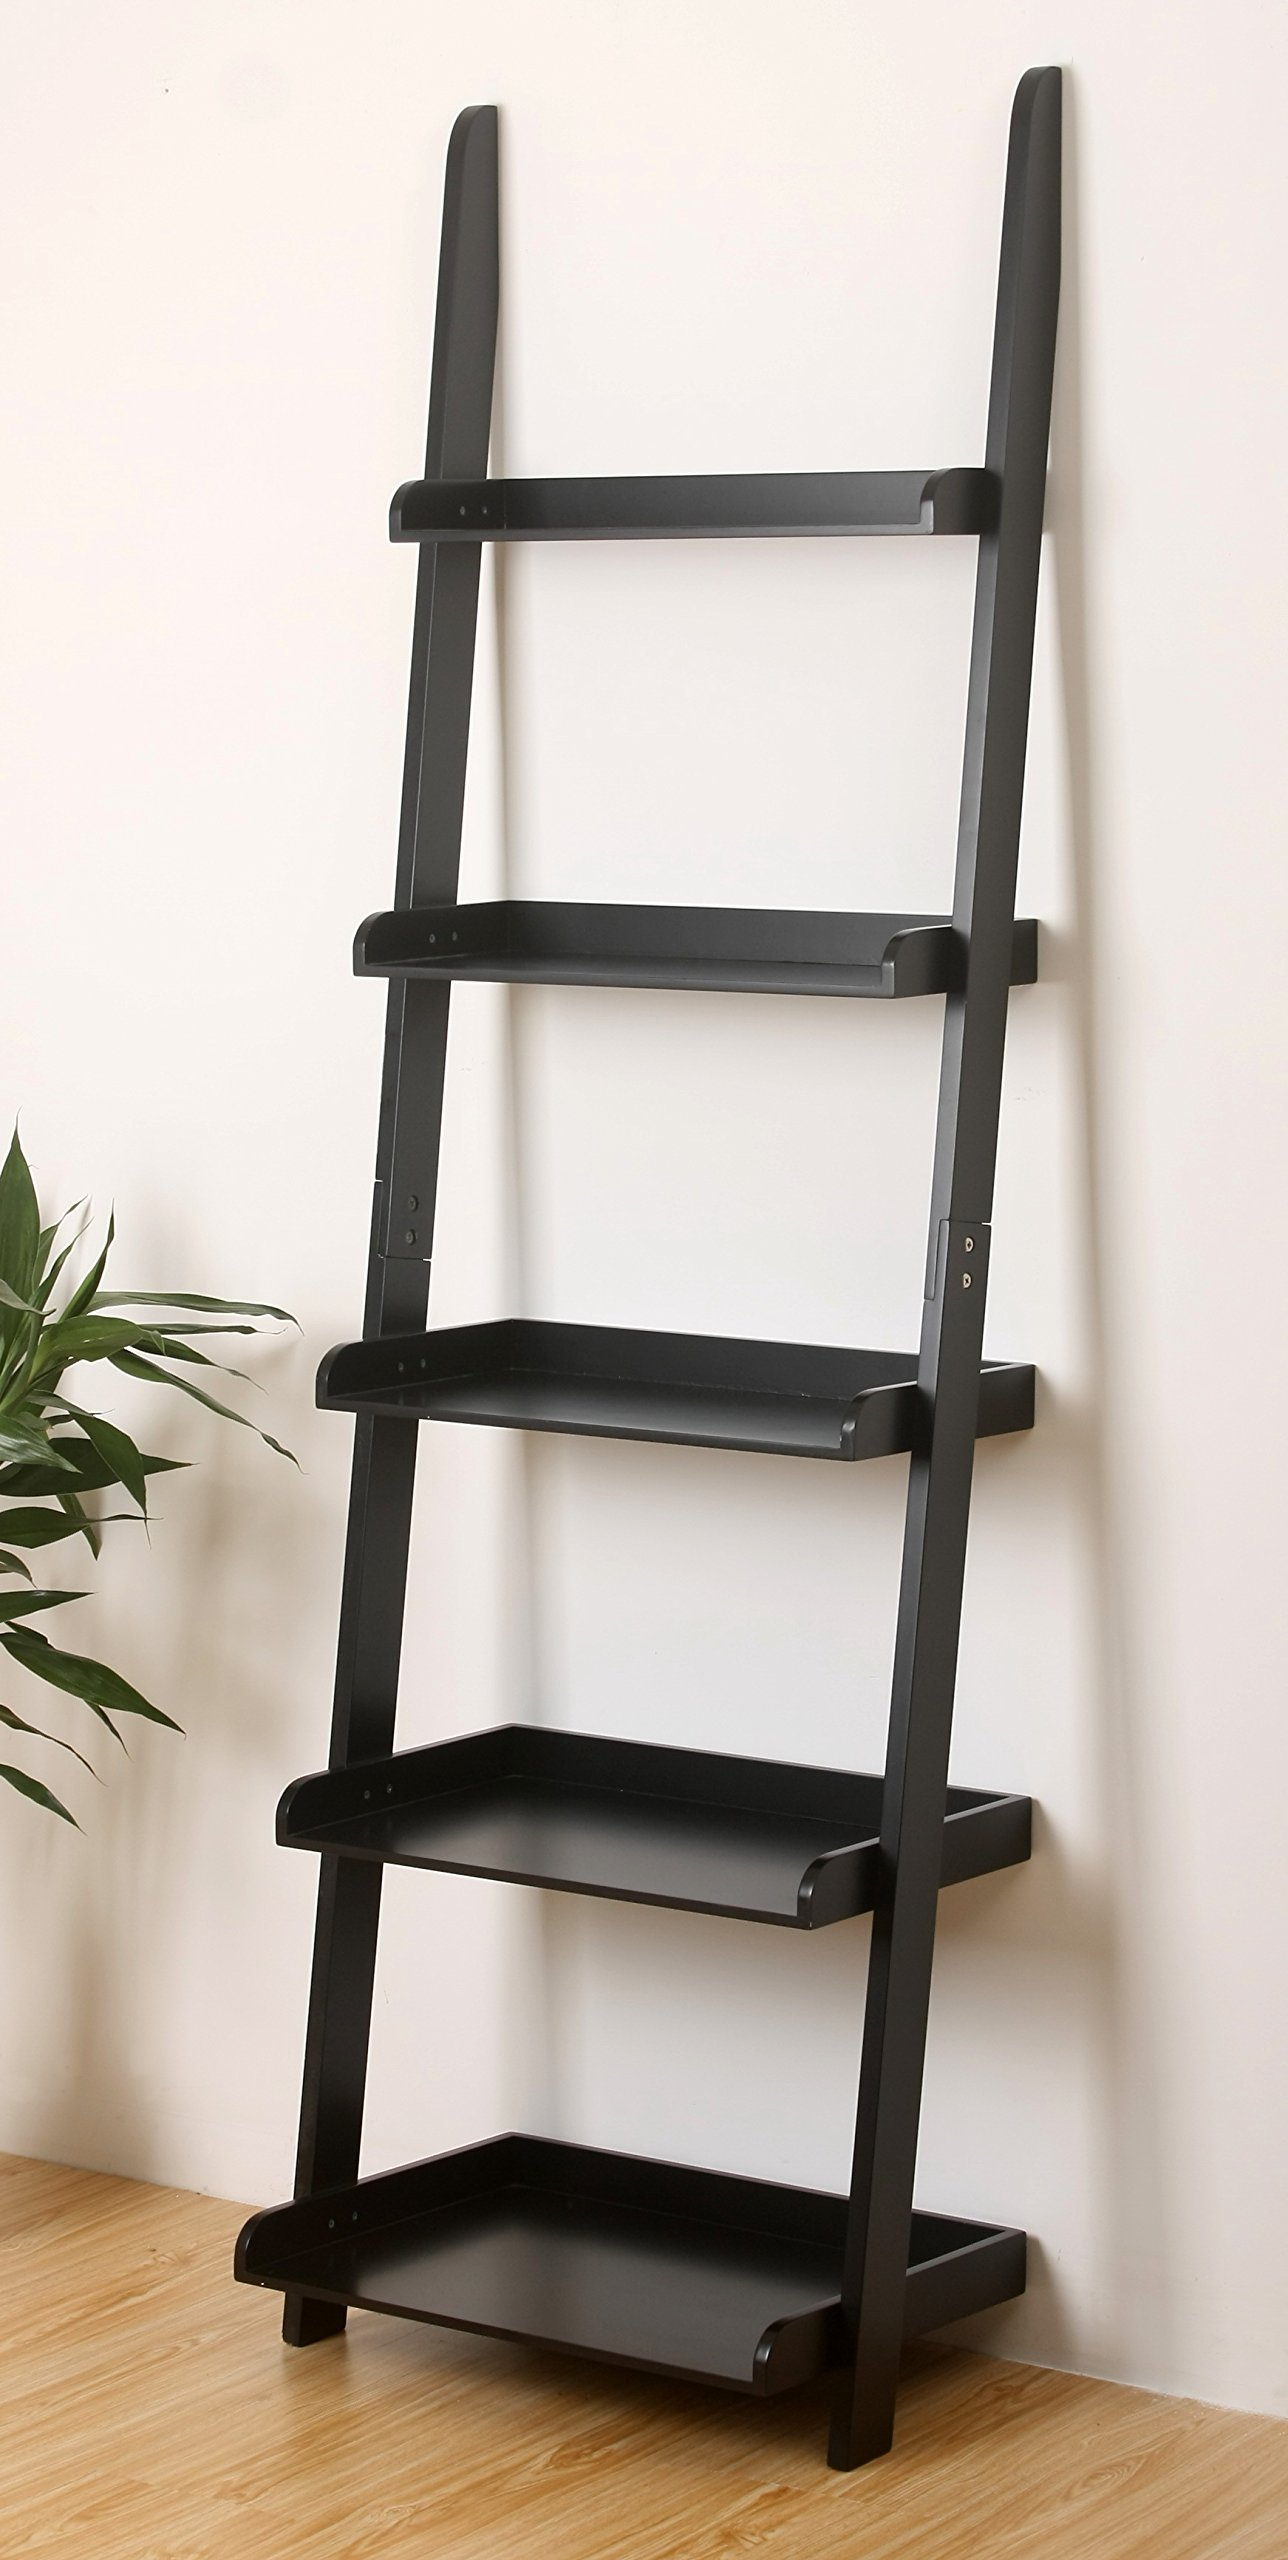 eHemco 5 Tier Leaning Wall Book Shelf in Black Finish 21-5/8''W X70''H by eHemco